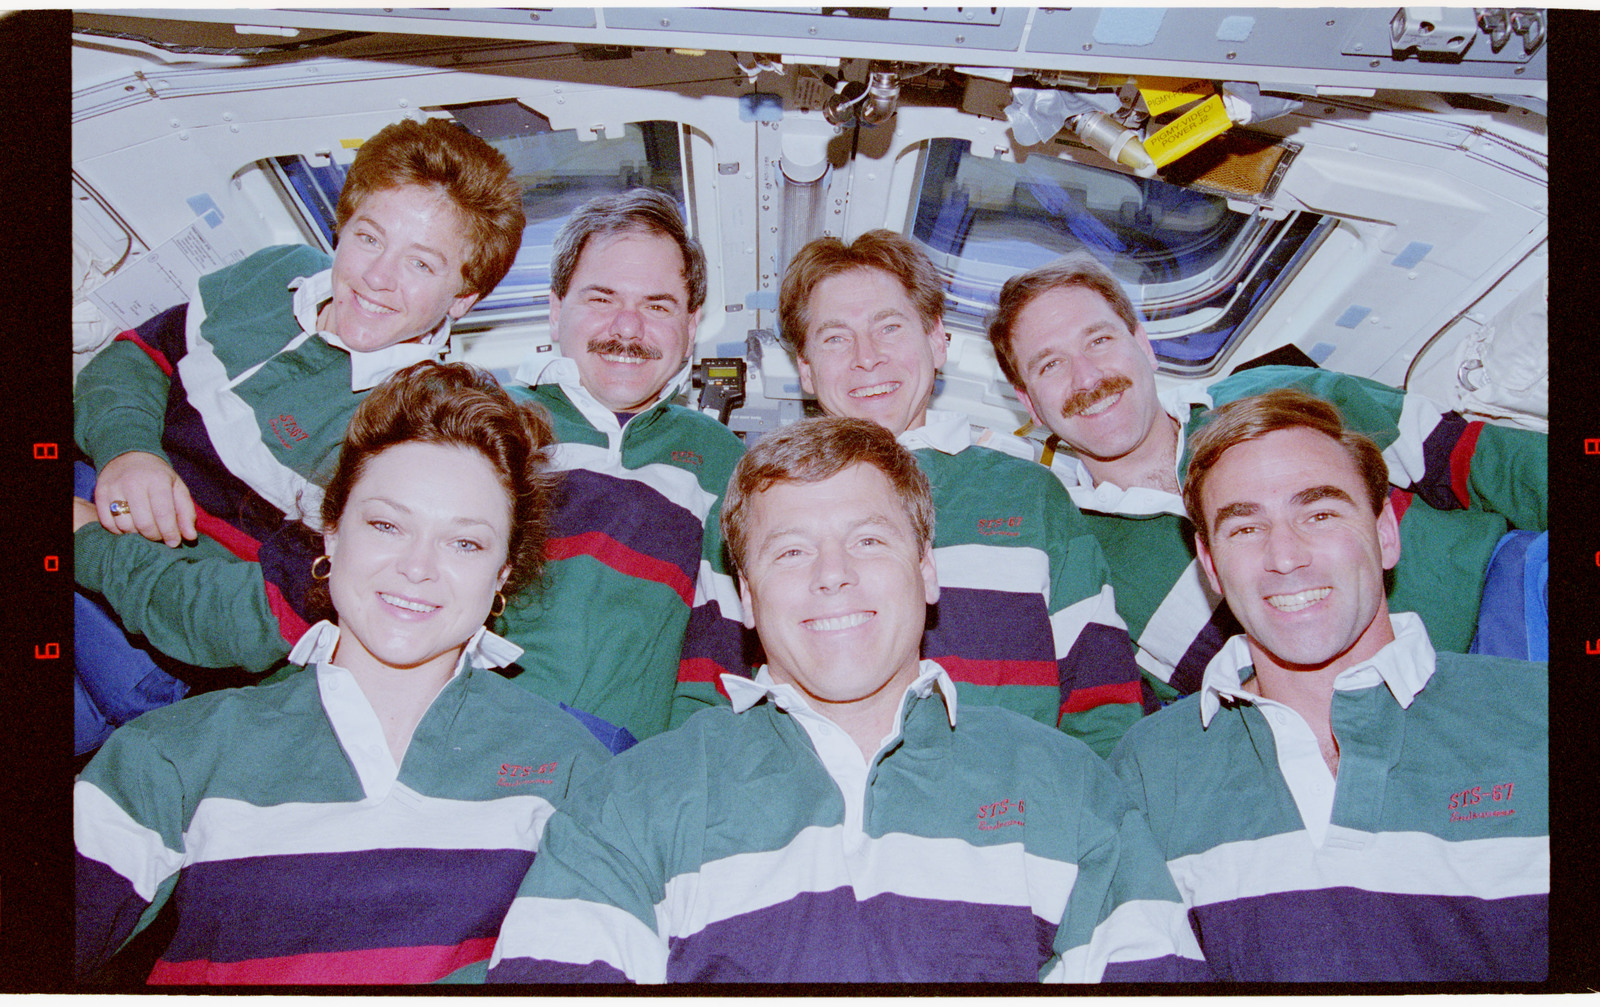 STS067-322-013 - STS-067 - STS-67 crew inflight portraits